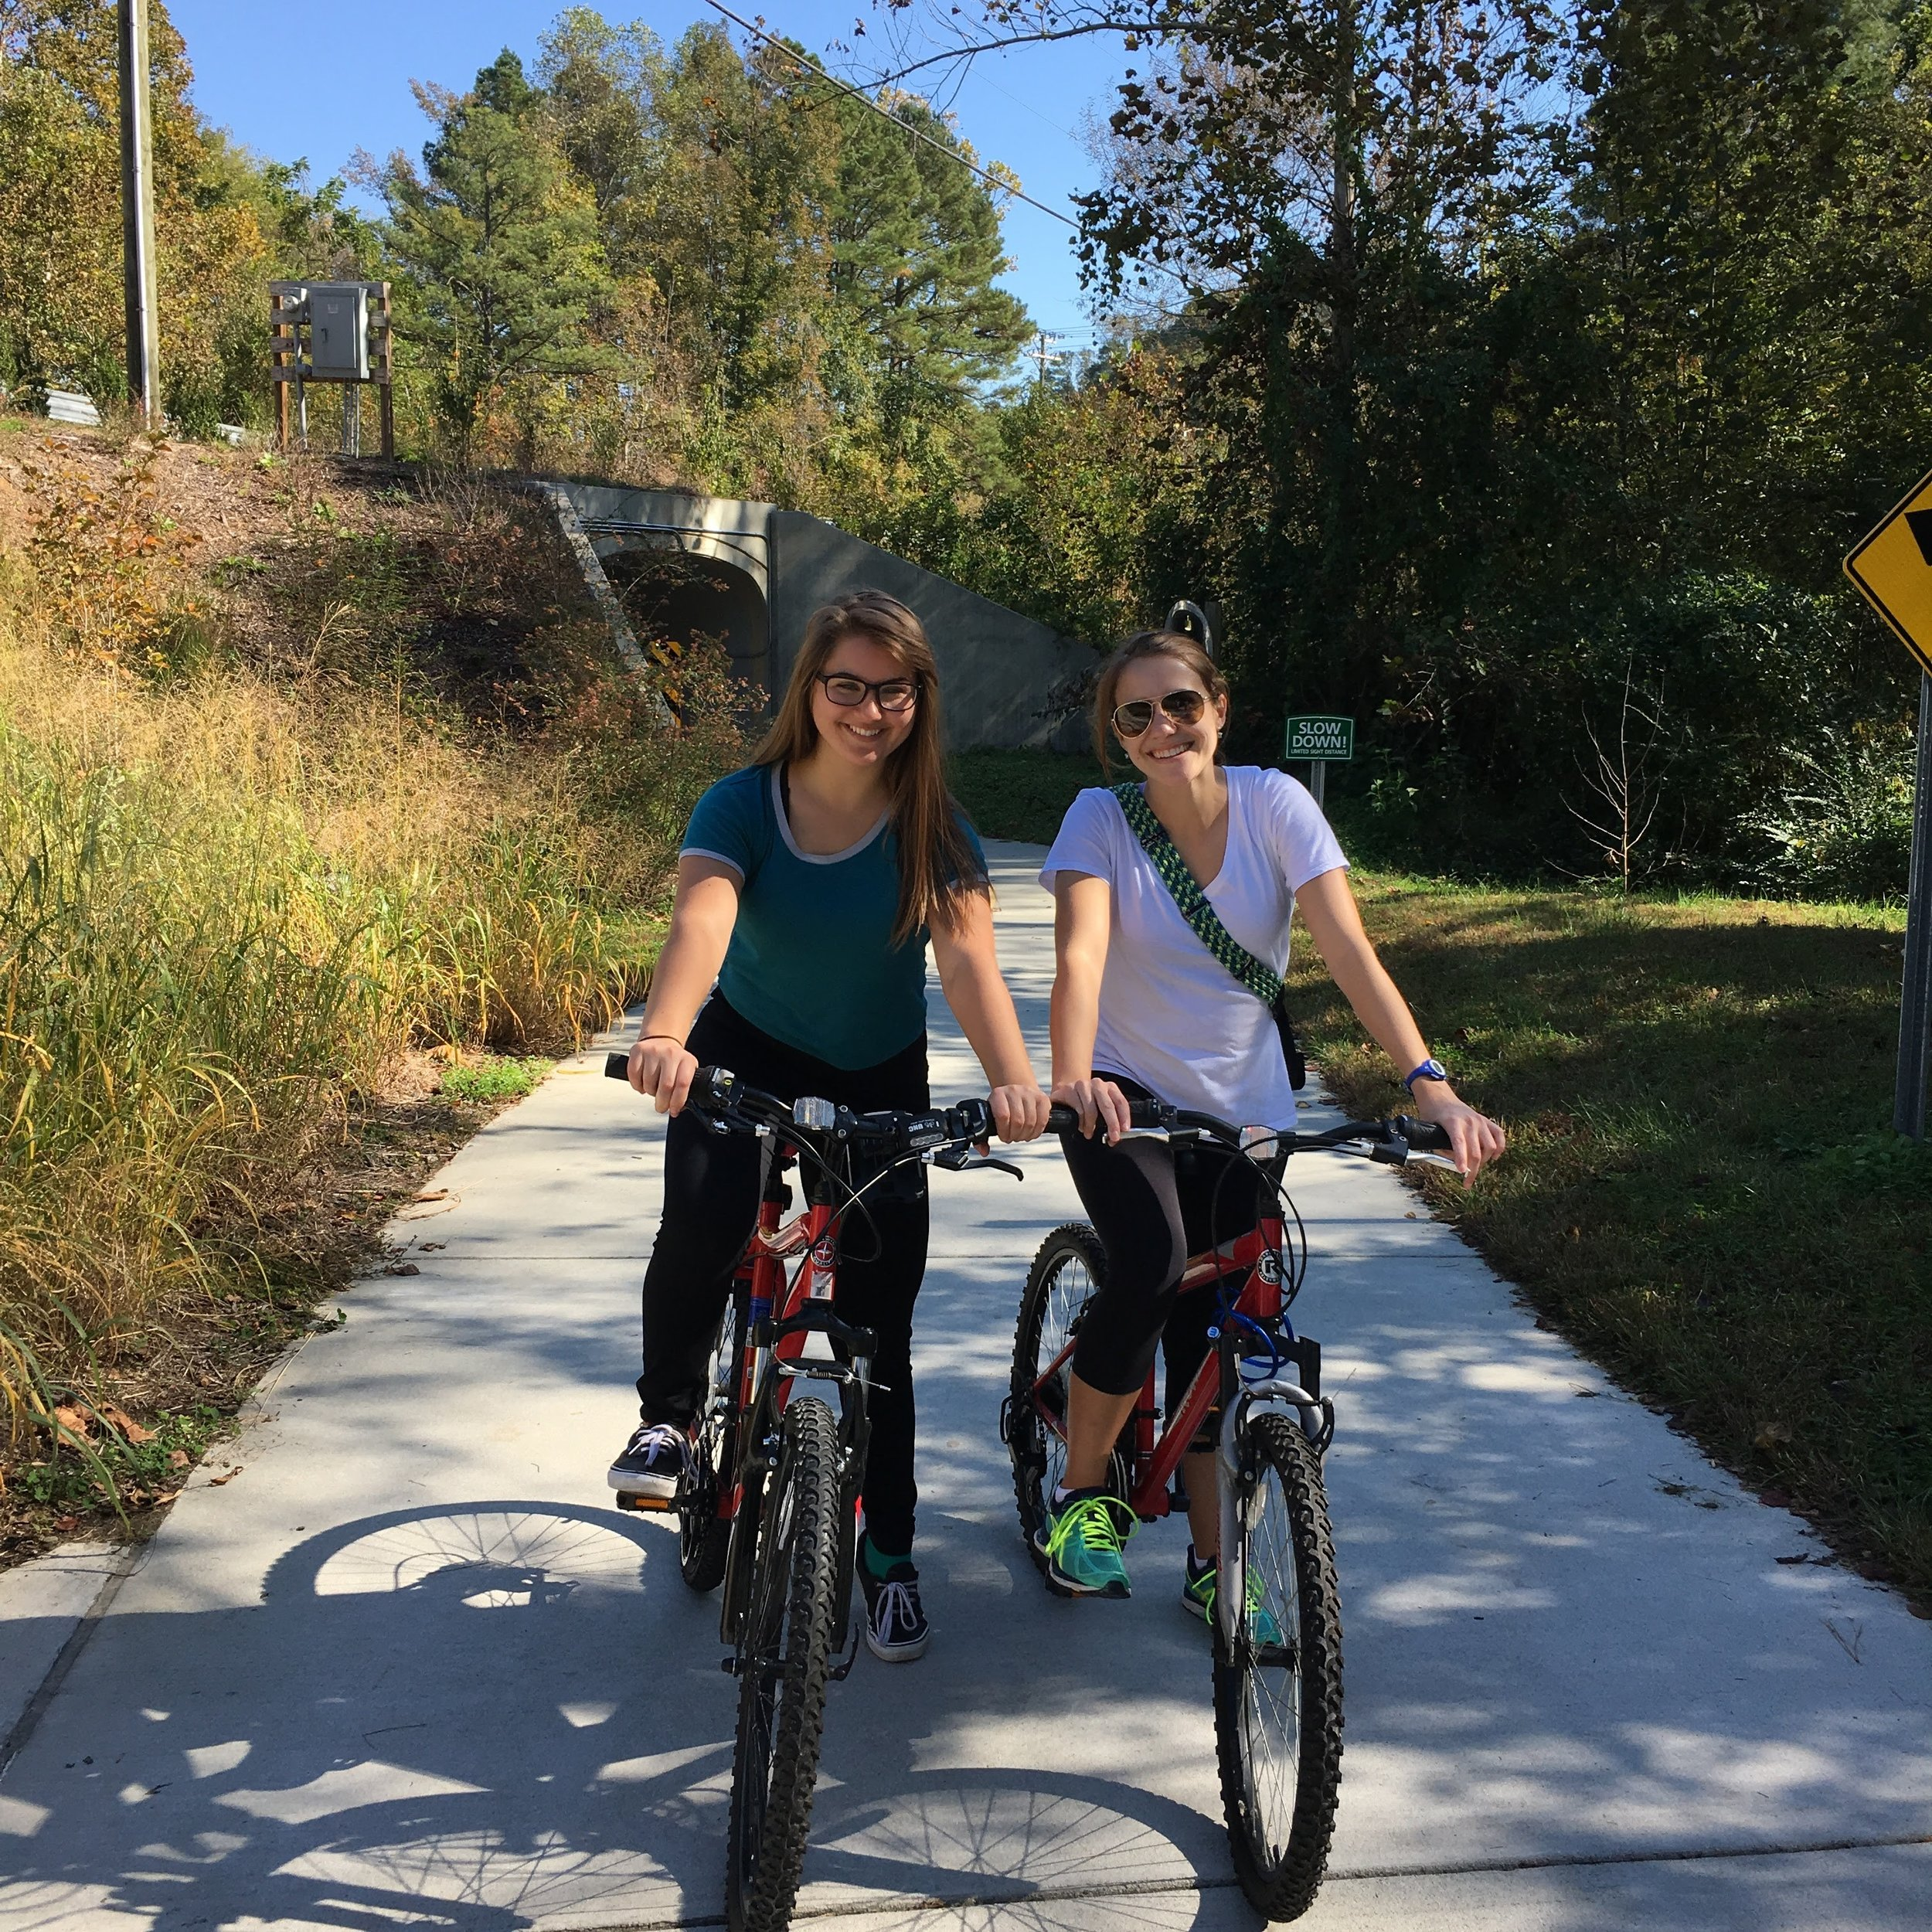 Getting a bike has not only allowed me to decrease my carbon footprint and save money, but I get to bask in the sun, spend quality time with good friends like Katie (right) and get a workout in, all of which increase serotonin levels. This trail is on Obie Creek towards Southern Village.